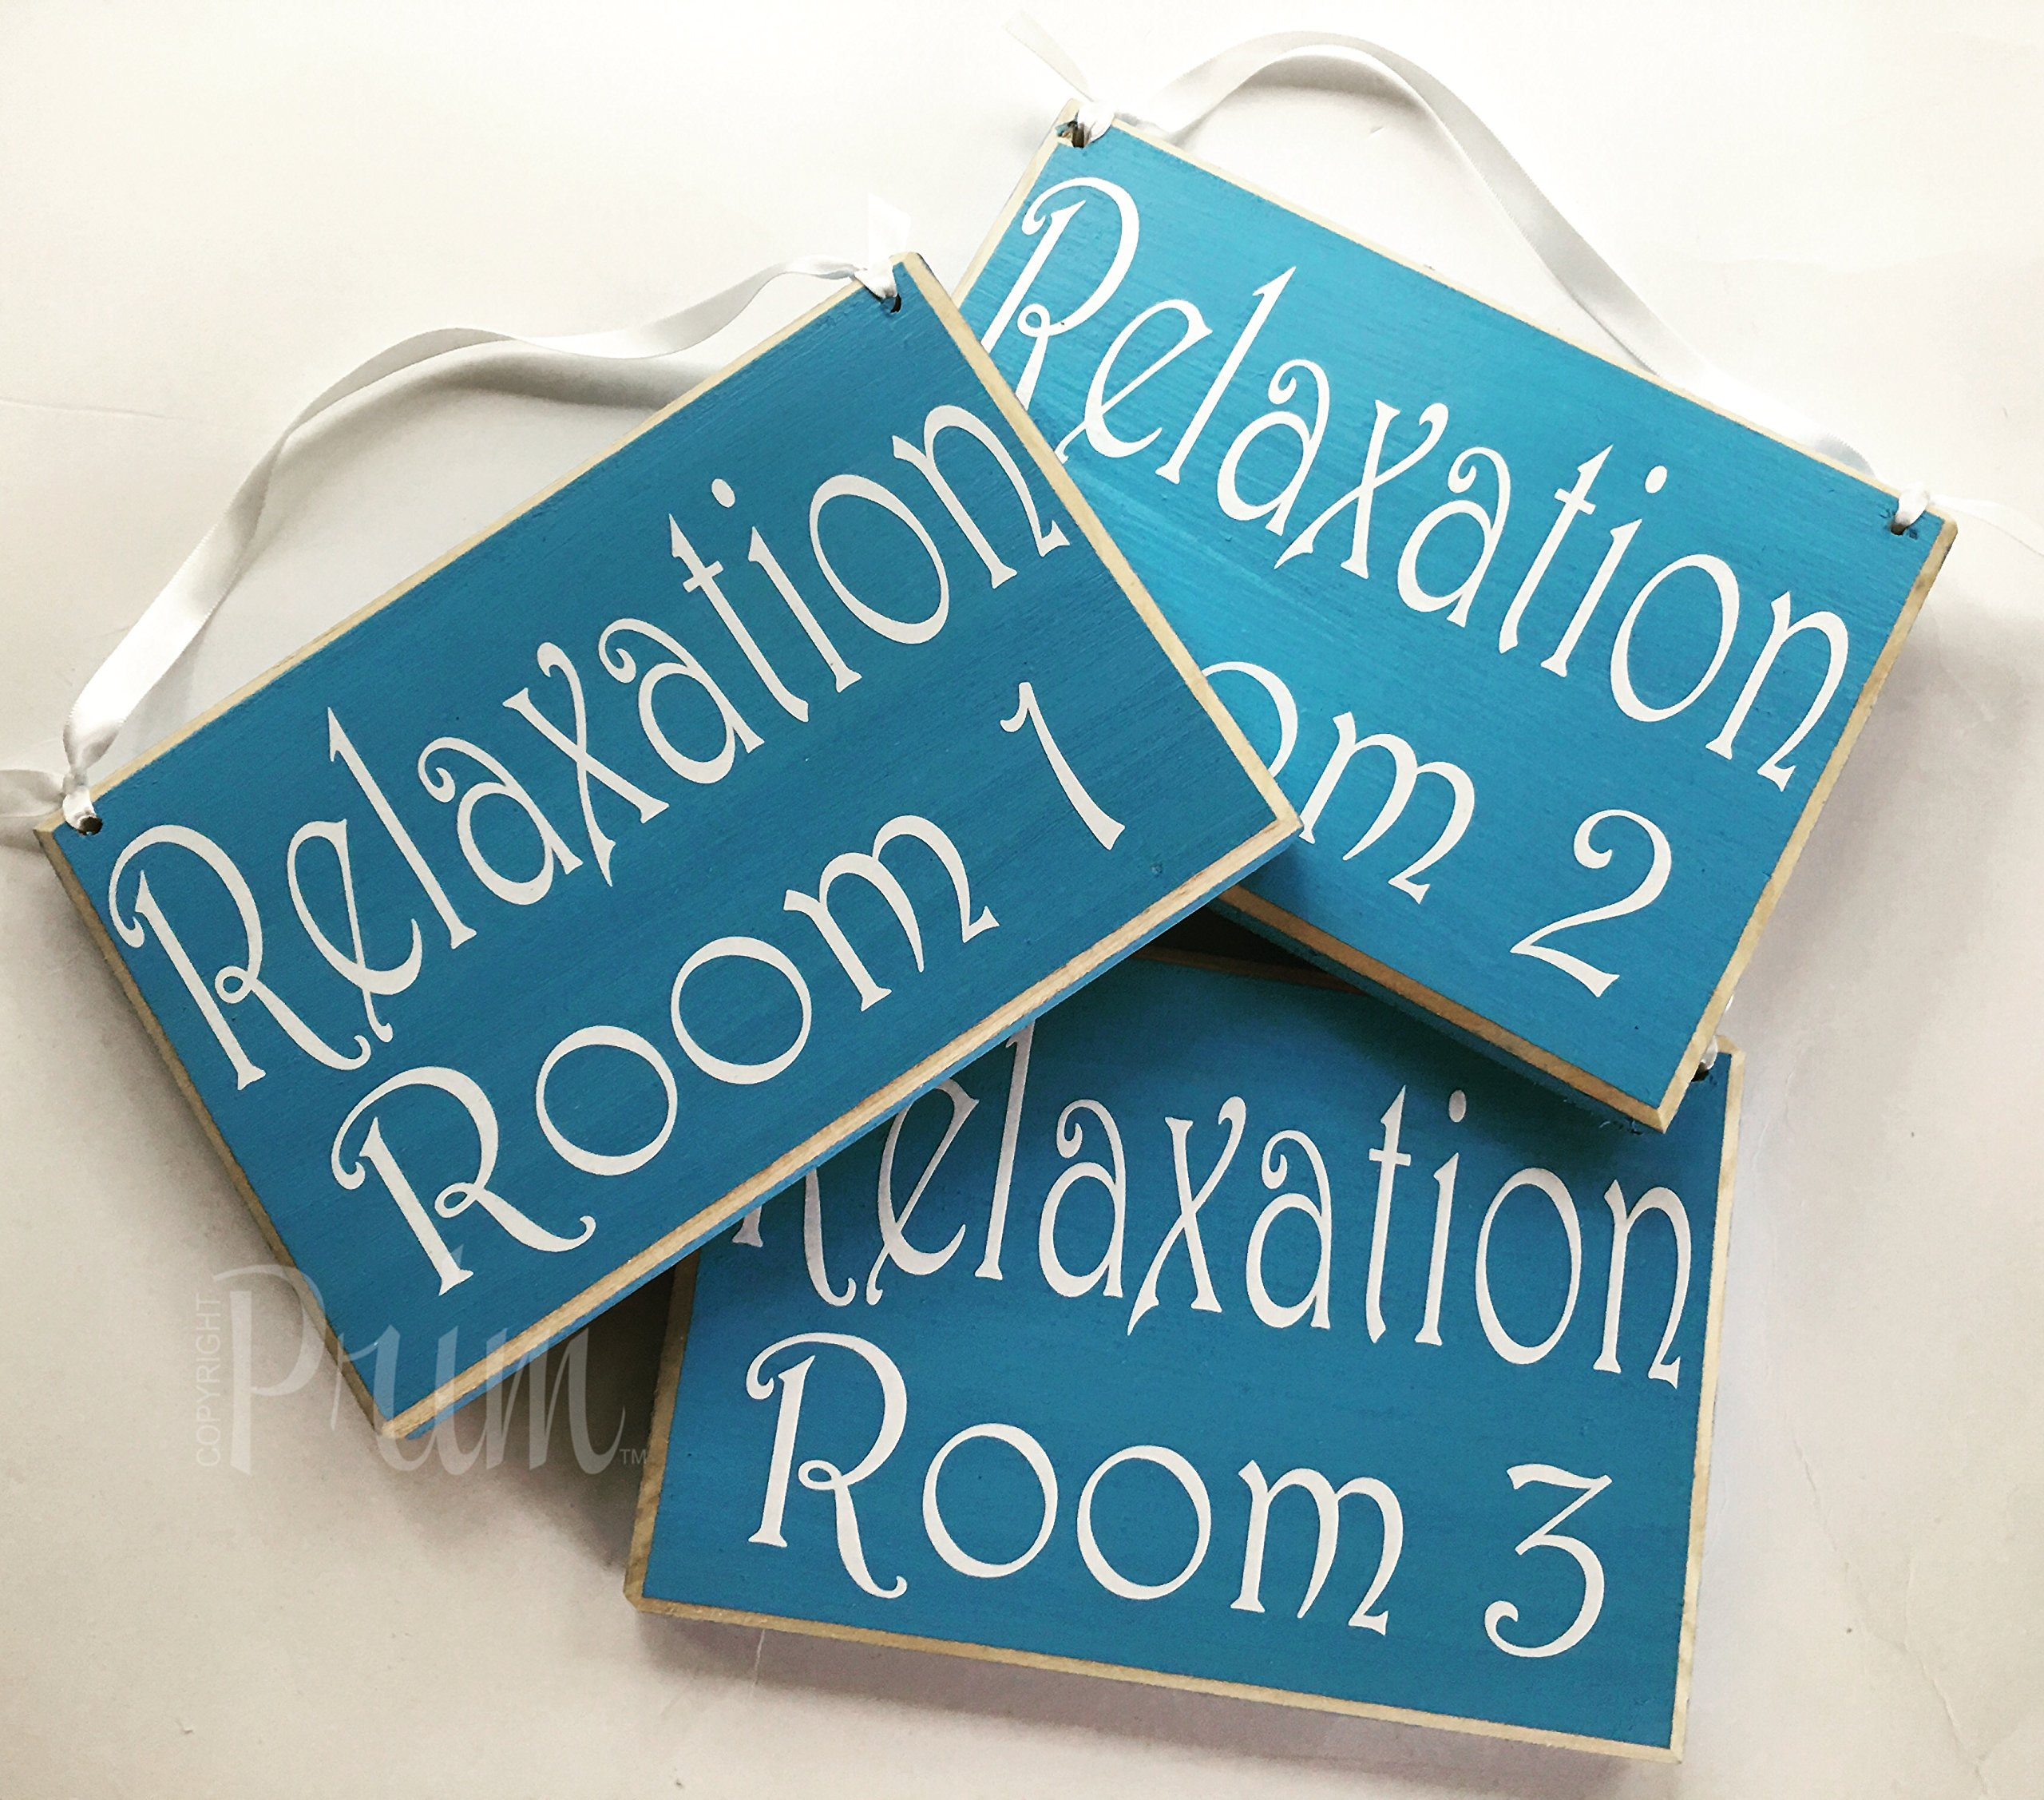 8x6 Relaxation Room Number (Choose Color) Custom Wood Sign Welcome Home Office Spa Reflexology Massage Meditation Waiting Room Patient Door